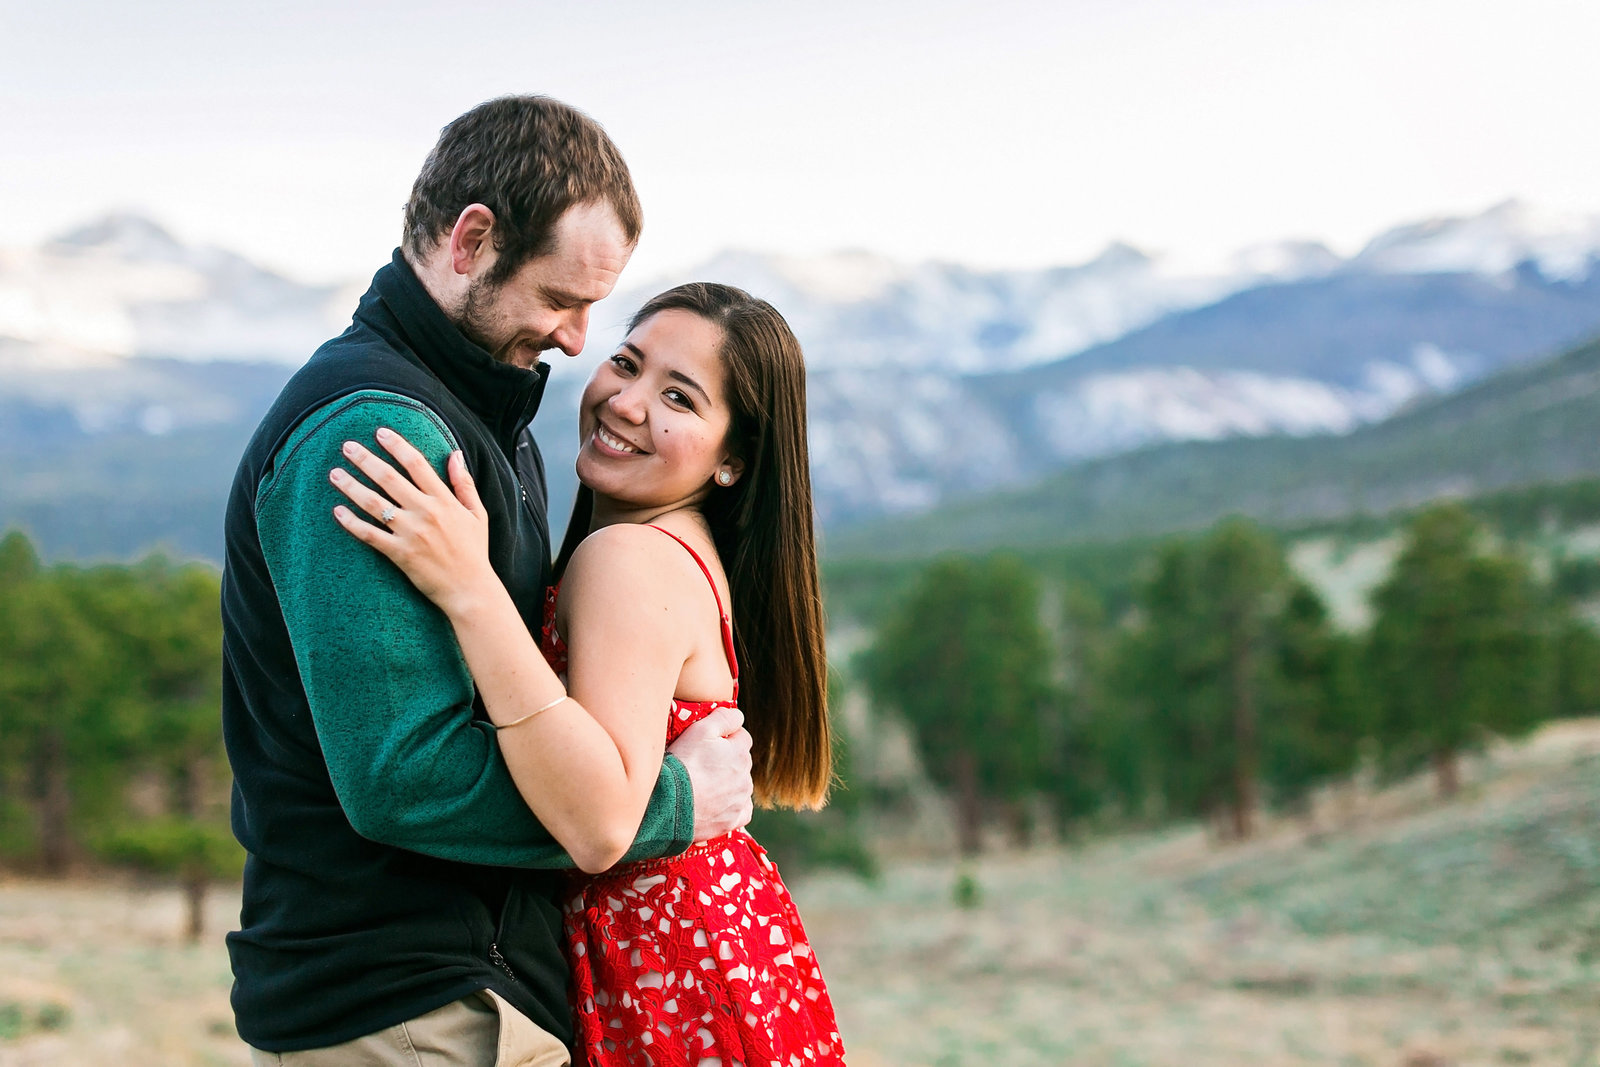 Scott&ElinaEngagement2017-45